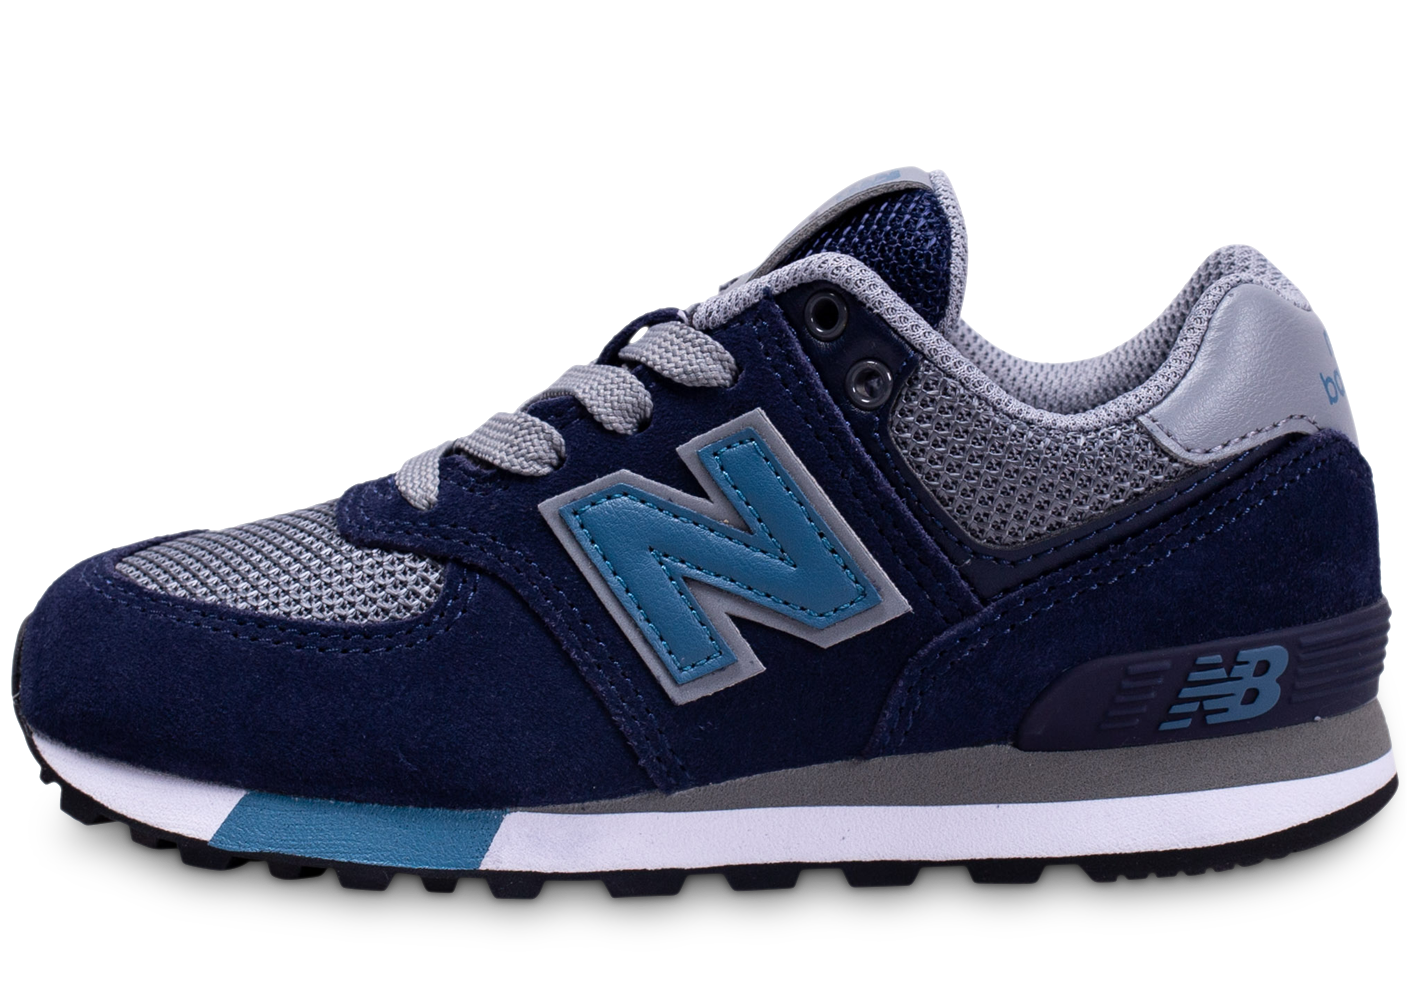 New balance pc574fnd marine enfant baskets